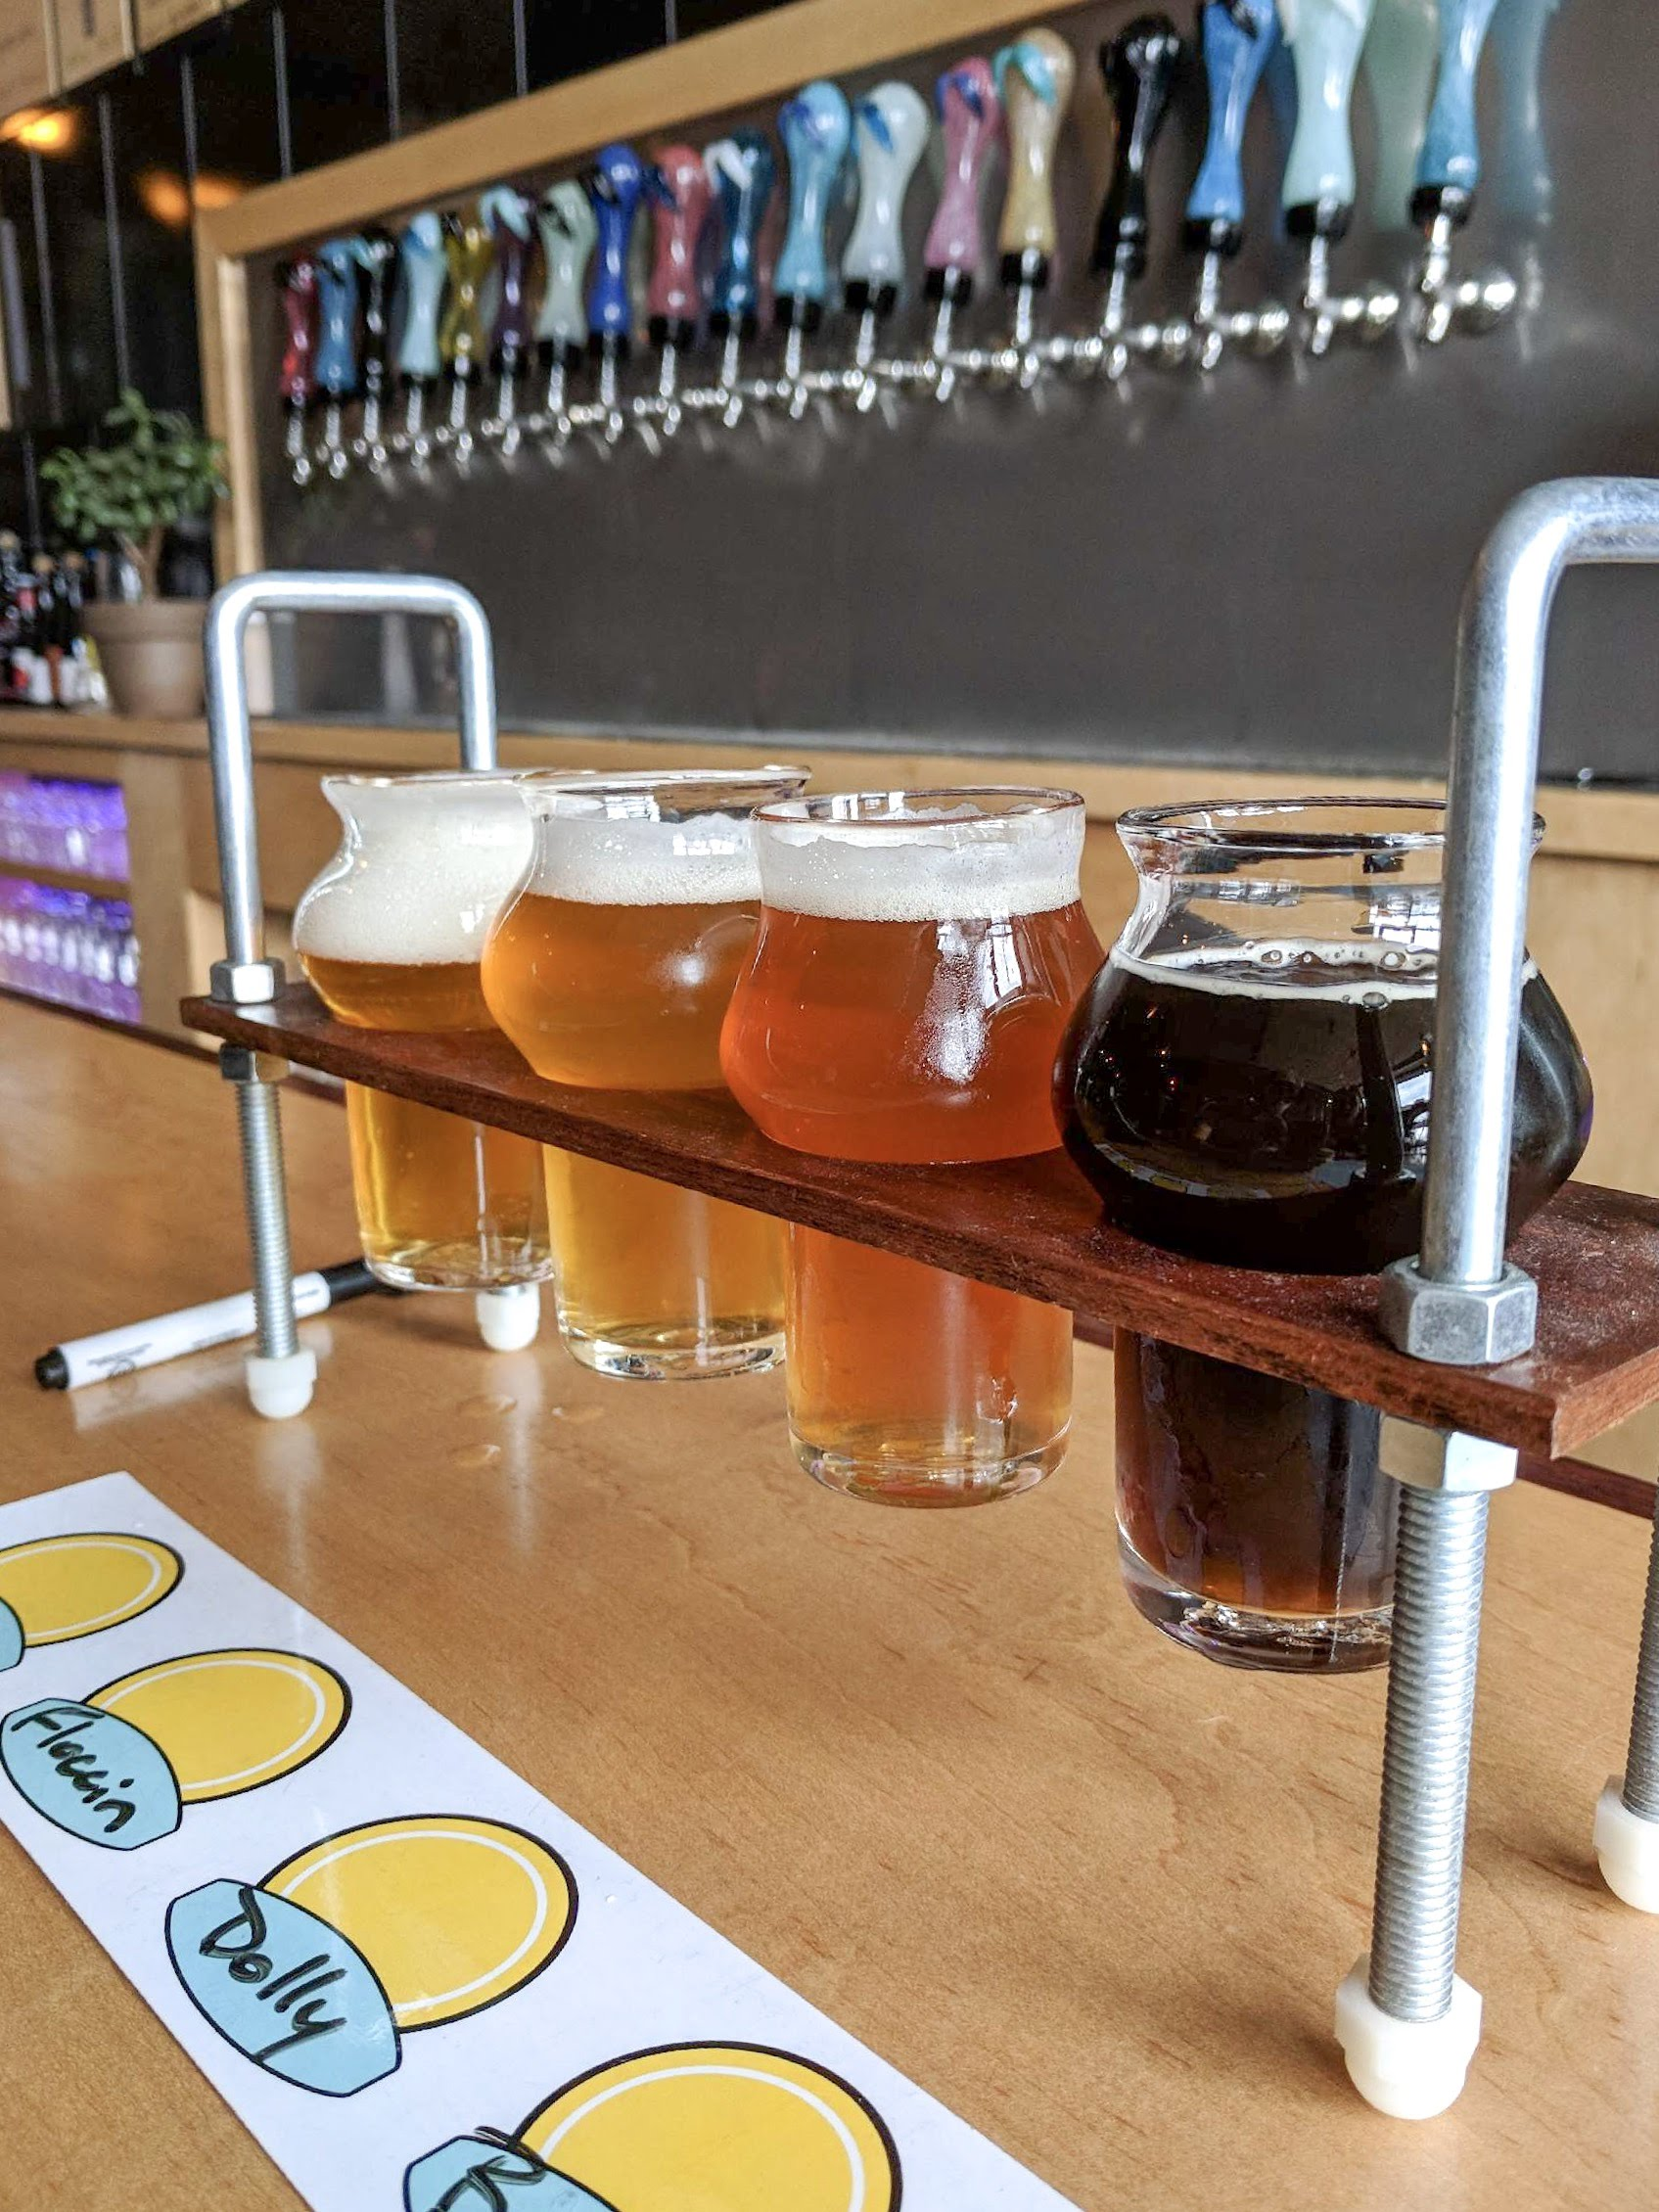 Flight of beer at Pretentious Beer Company